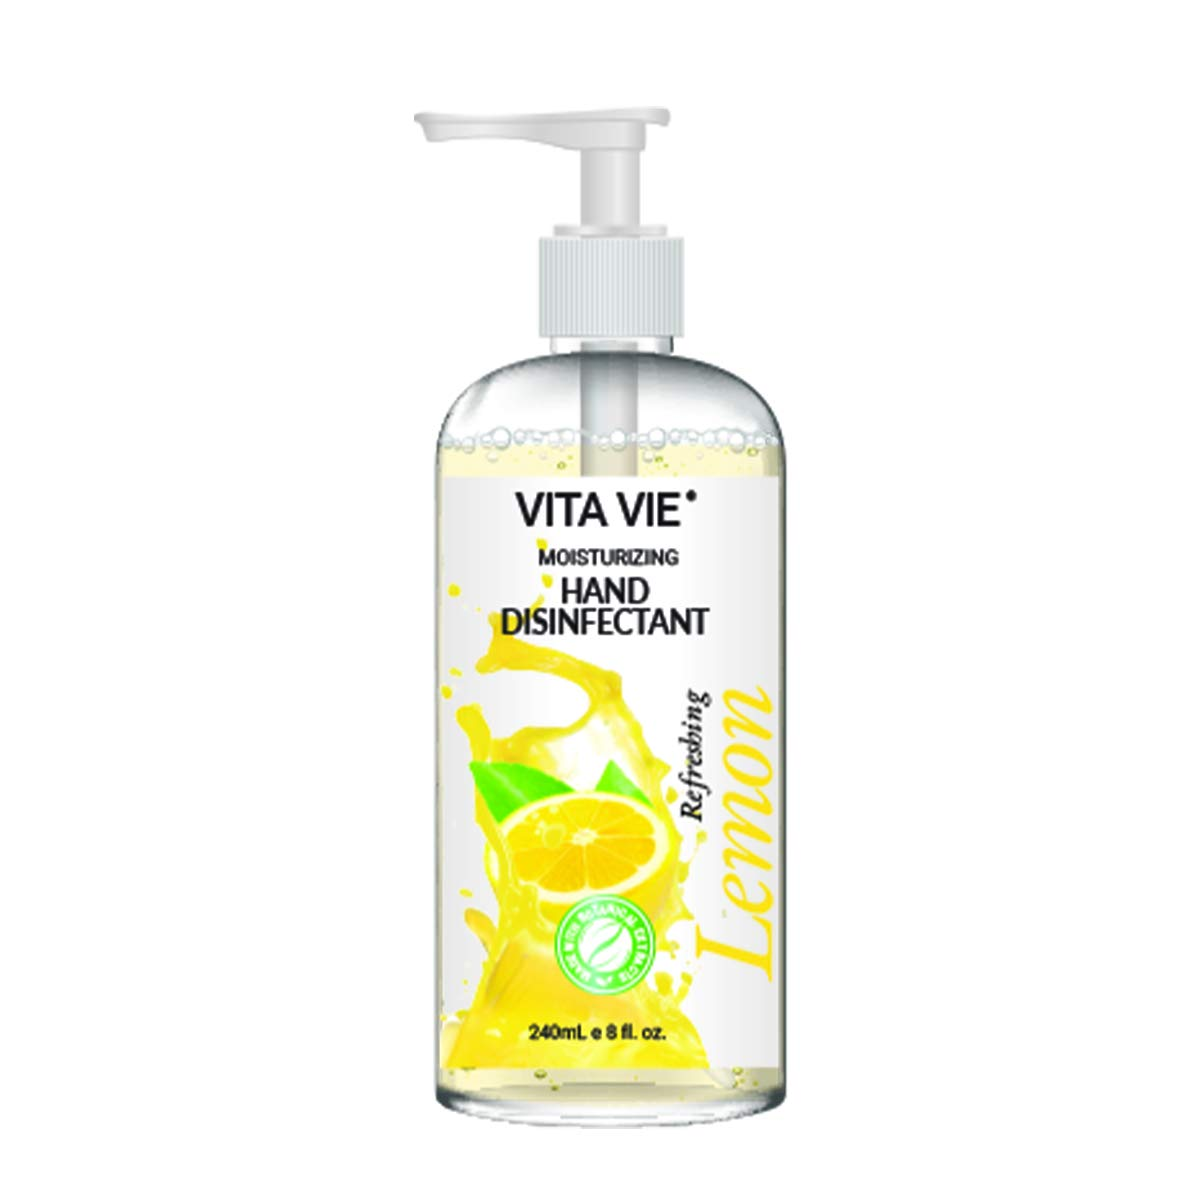 Vita Vie Moisturizing Hand Disinfectant Lemon Scented Hand Sanitizer With Pump 8 Oz No Soap Rinse Free Hand Cleaner